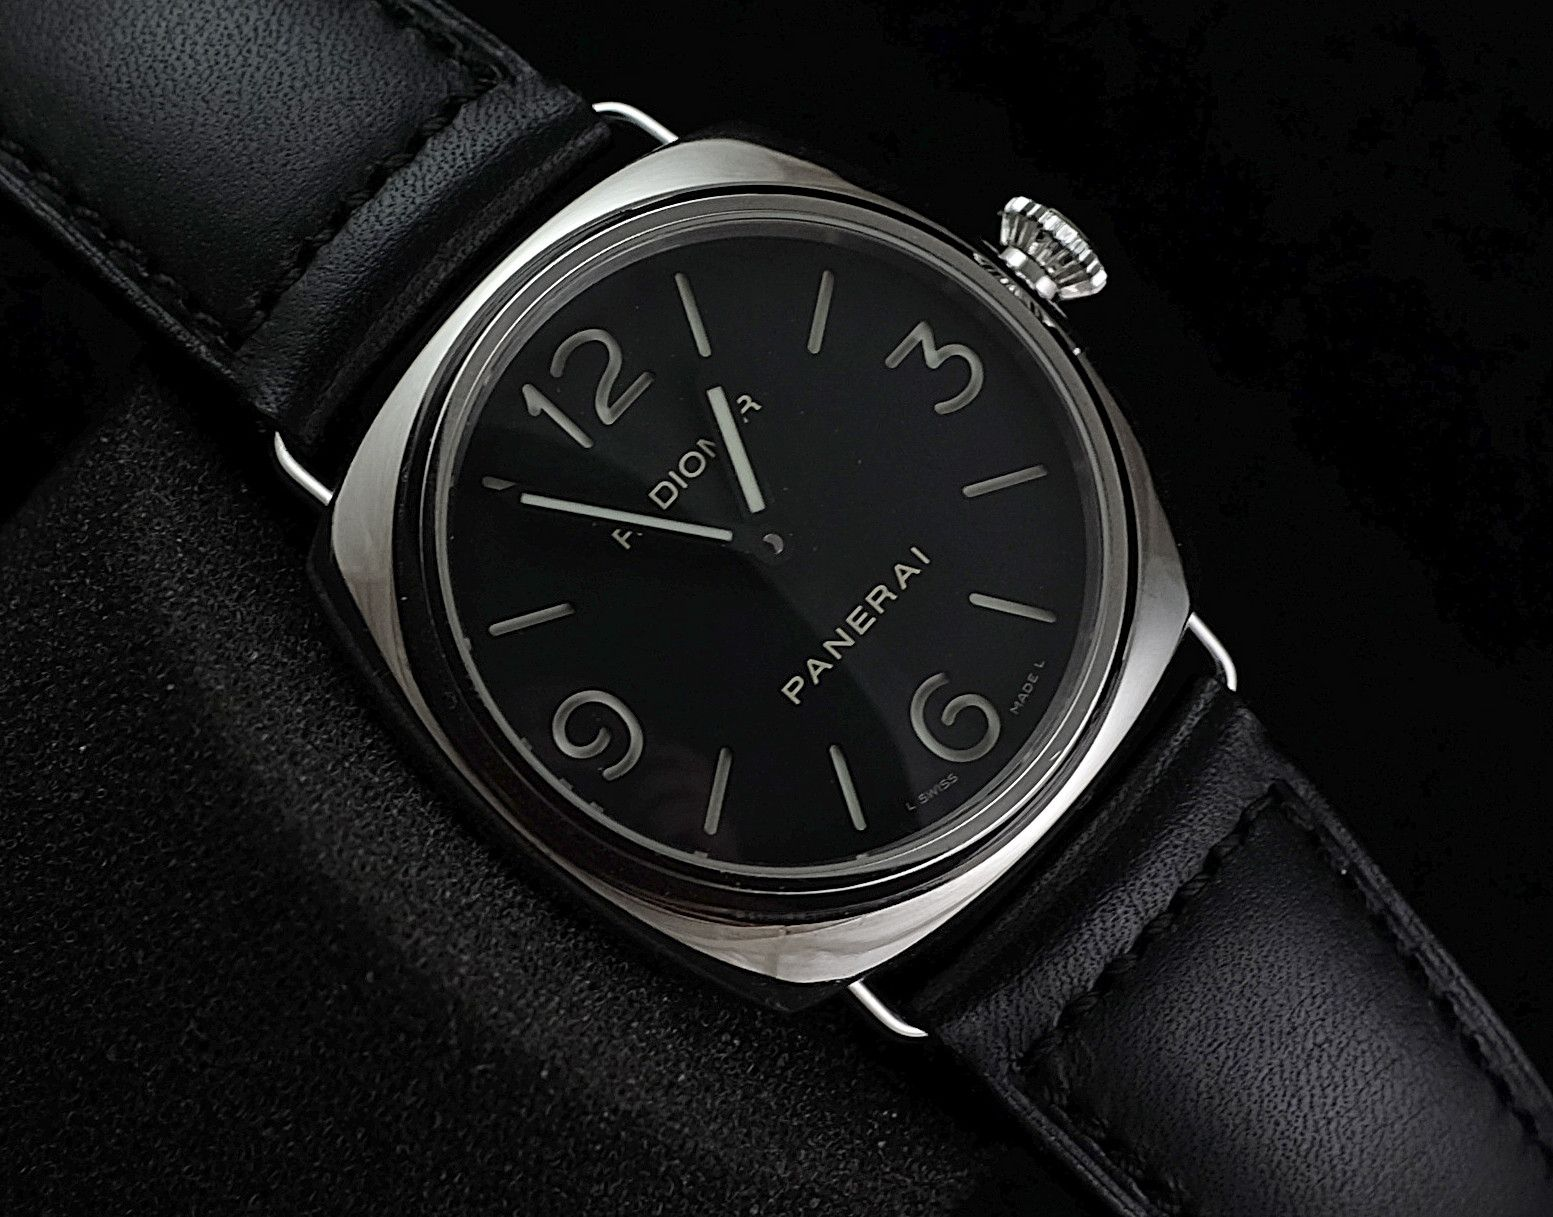 Panerai Radiomir Pam210 45mm H Ref No Pam 210 Movement Manual